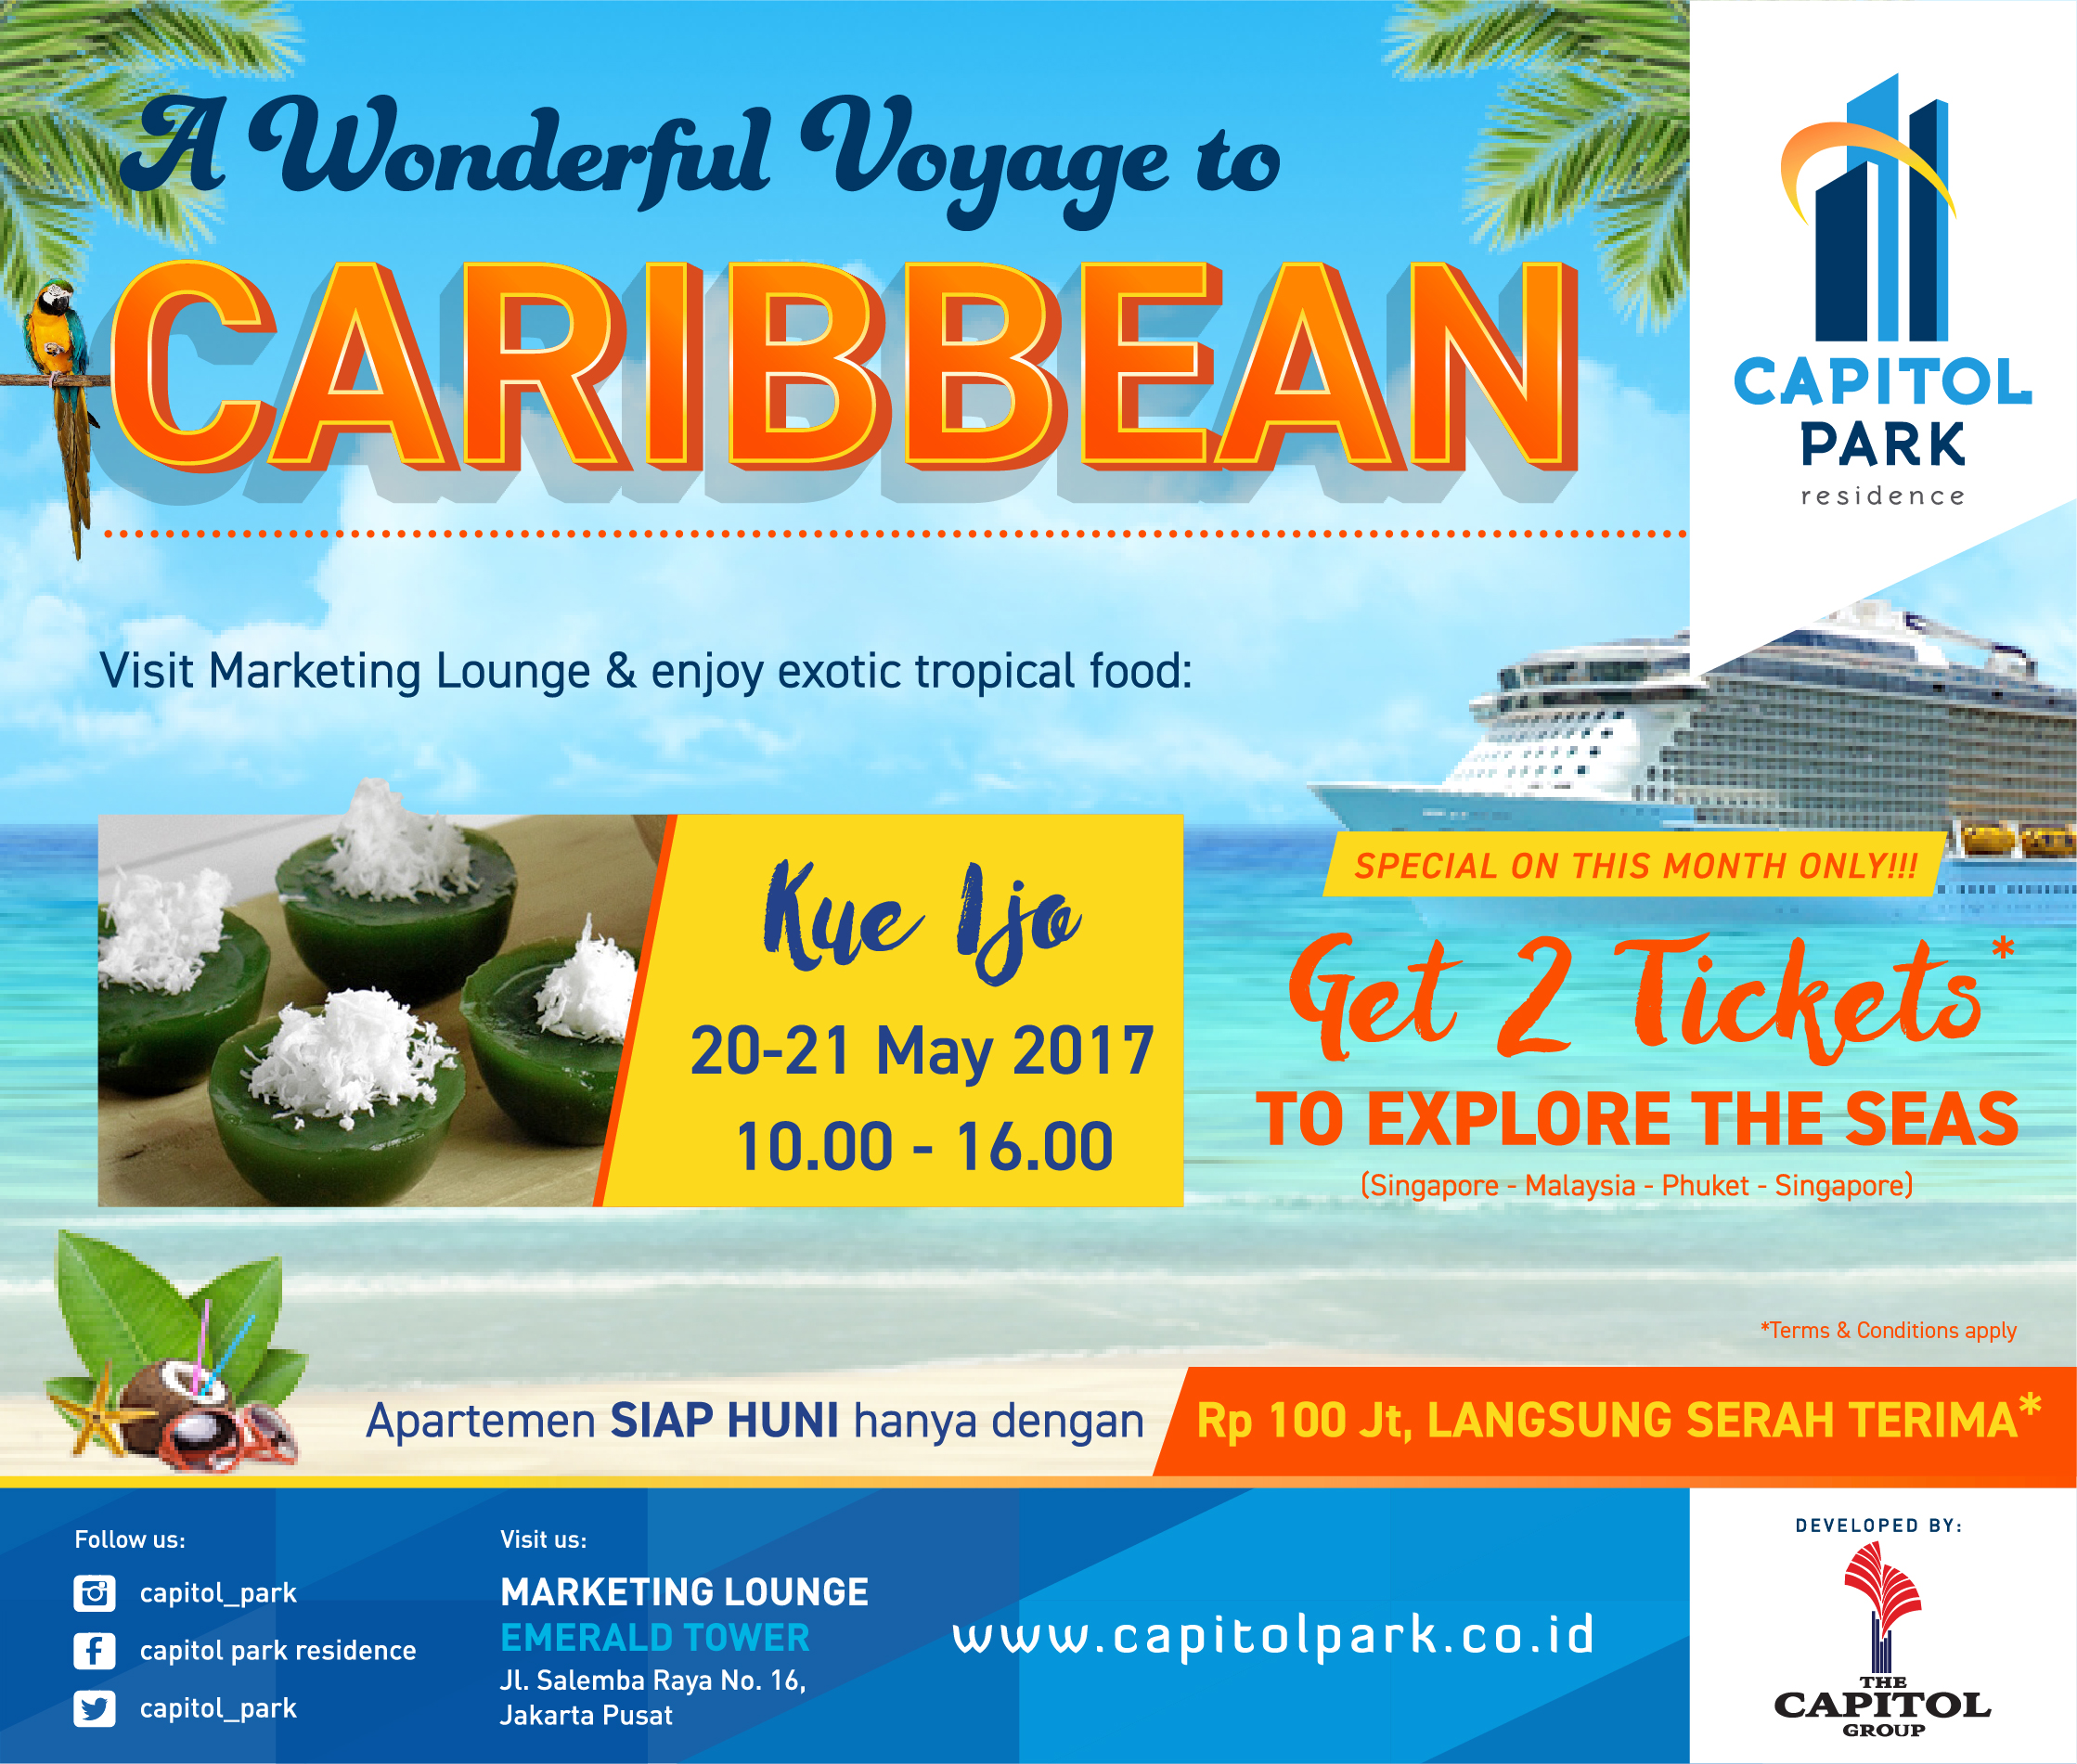 Capitol Park News - A Wonderful Voyage to Caribbean - Kue Ijo